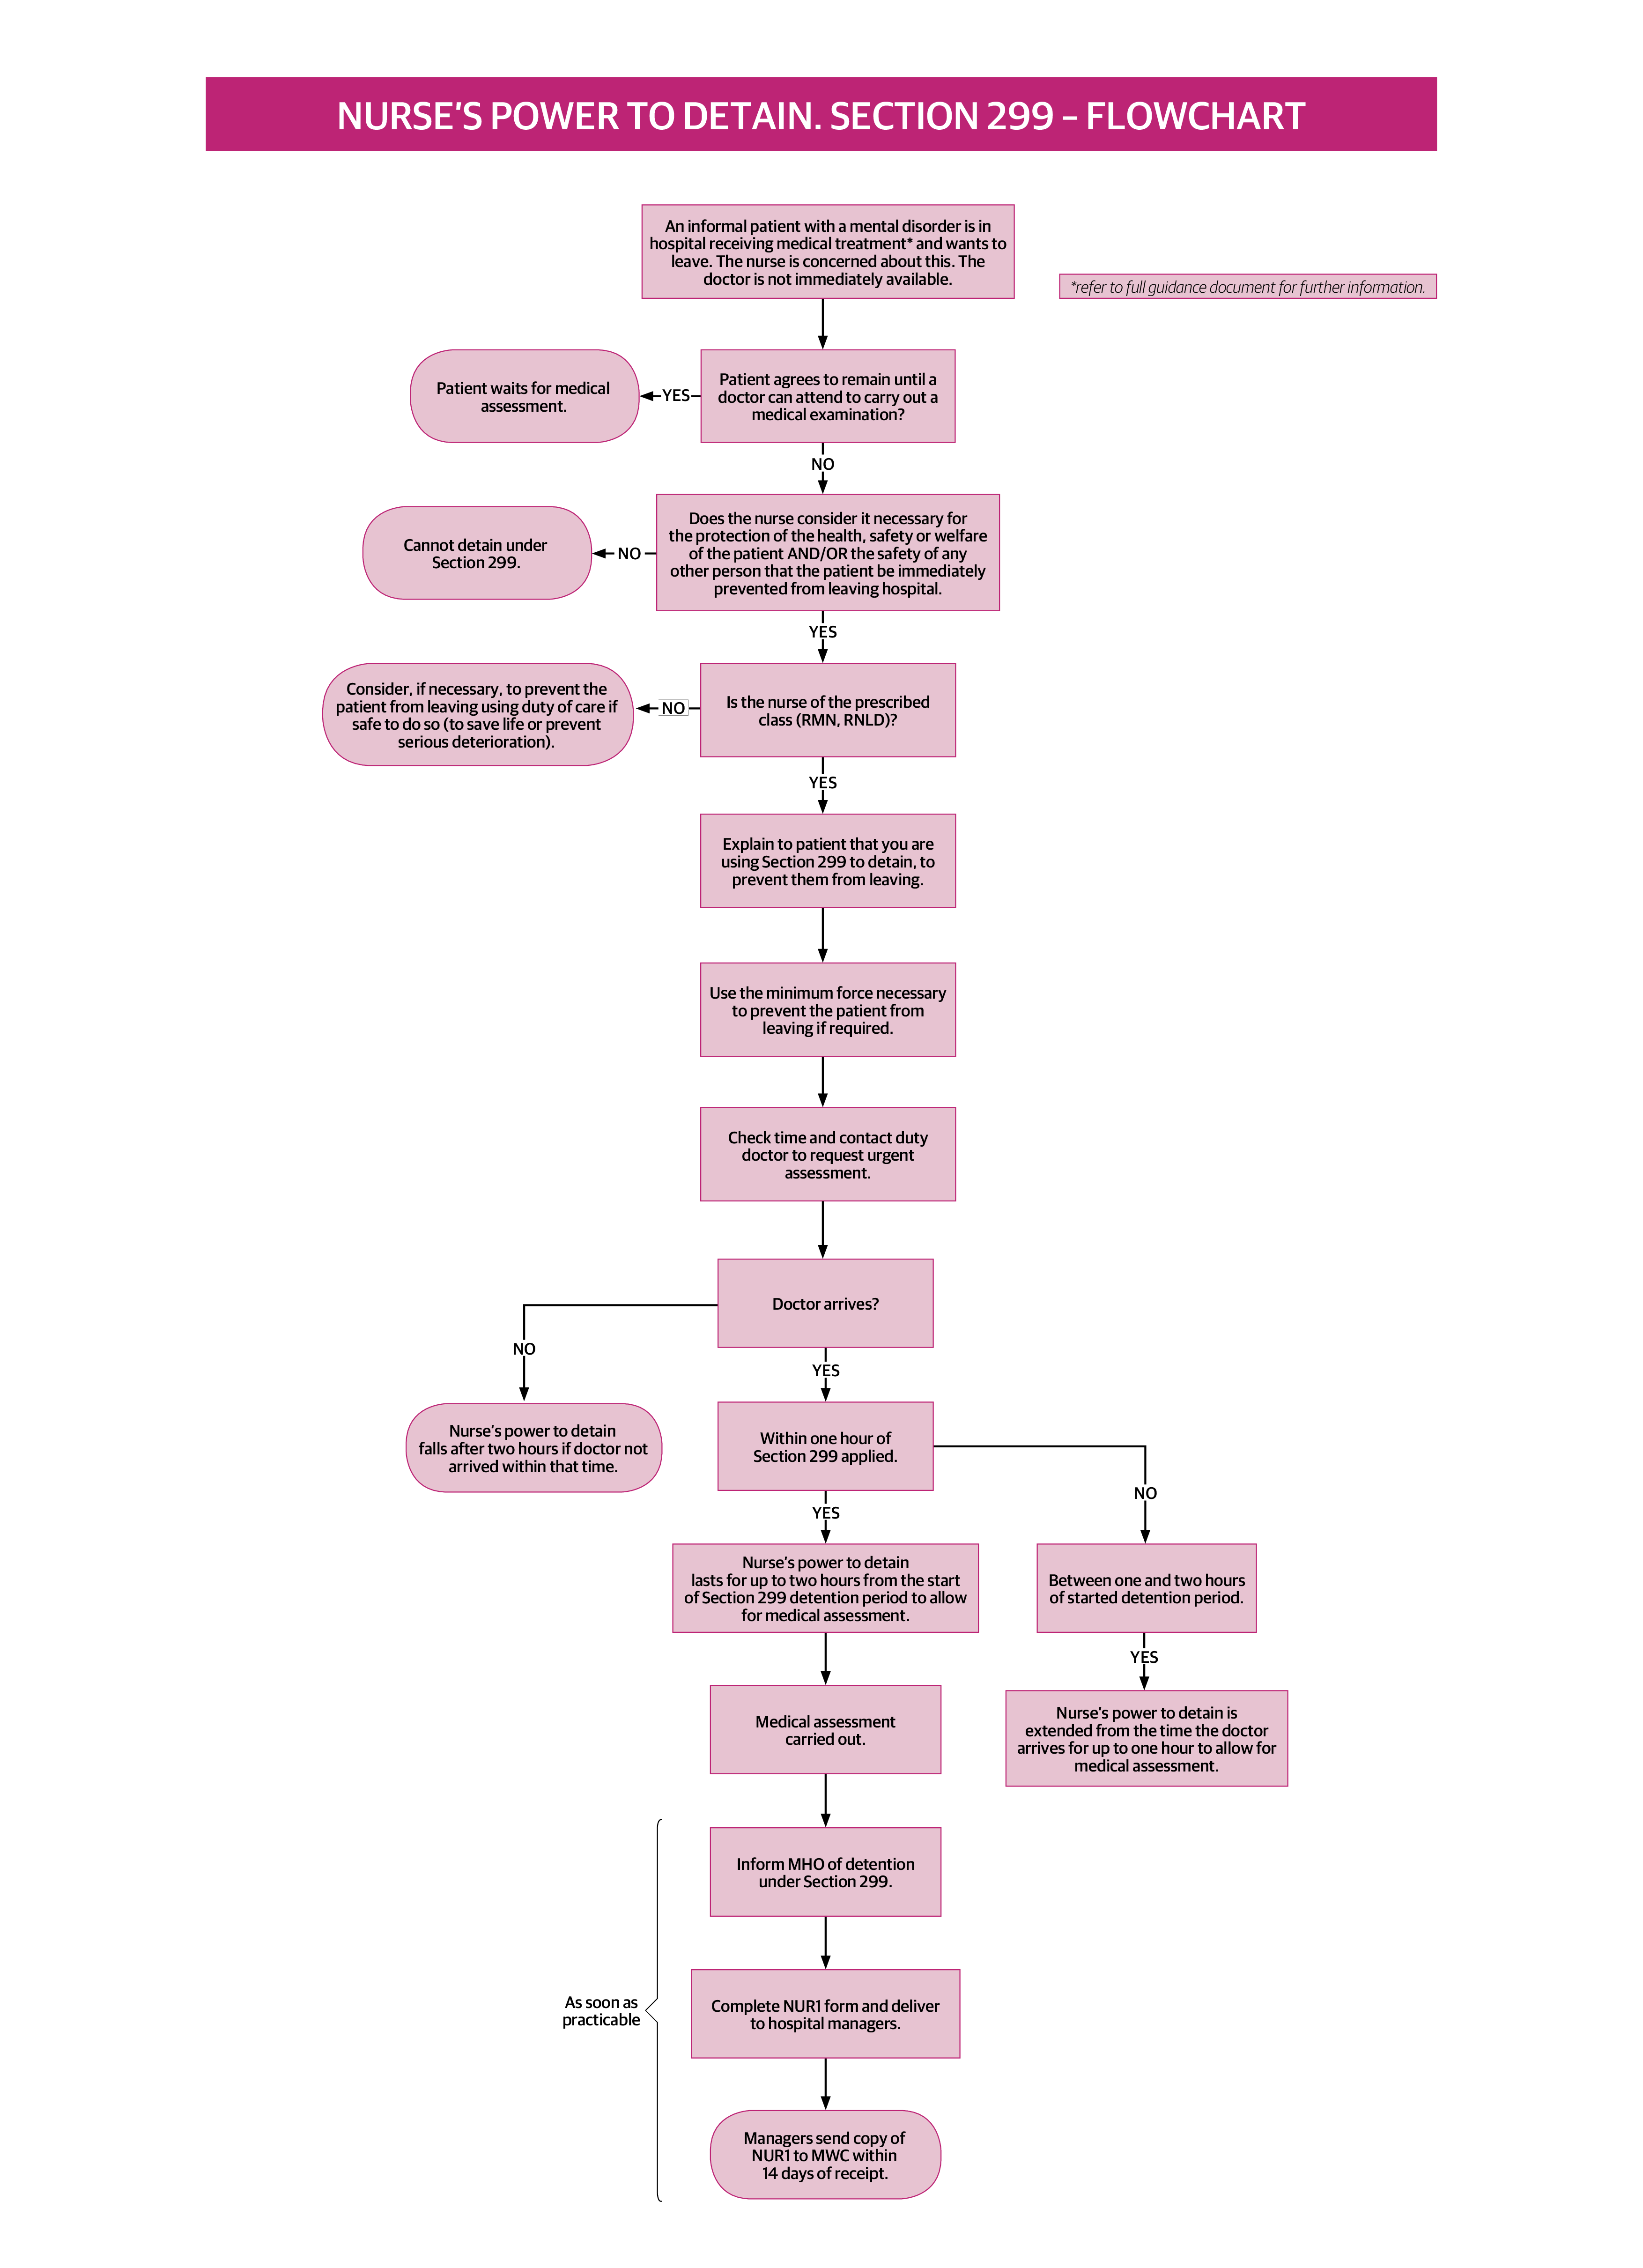 Nursing Assessment Flow Chart Main Image